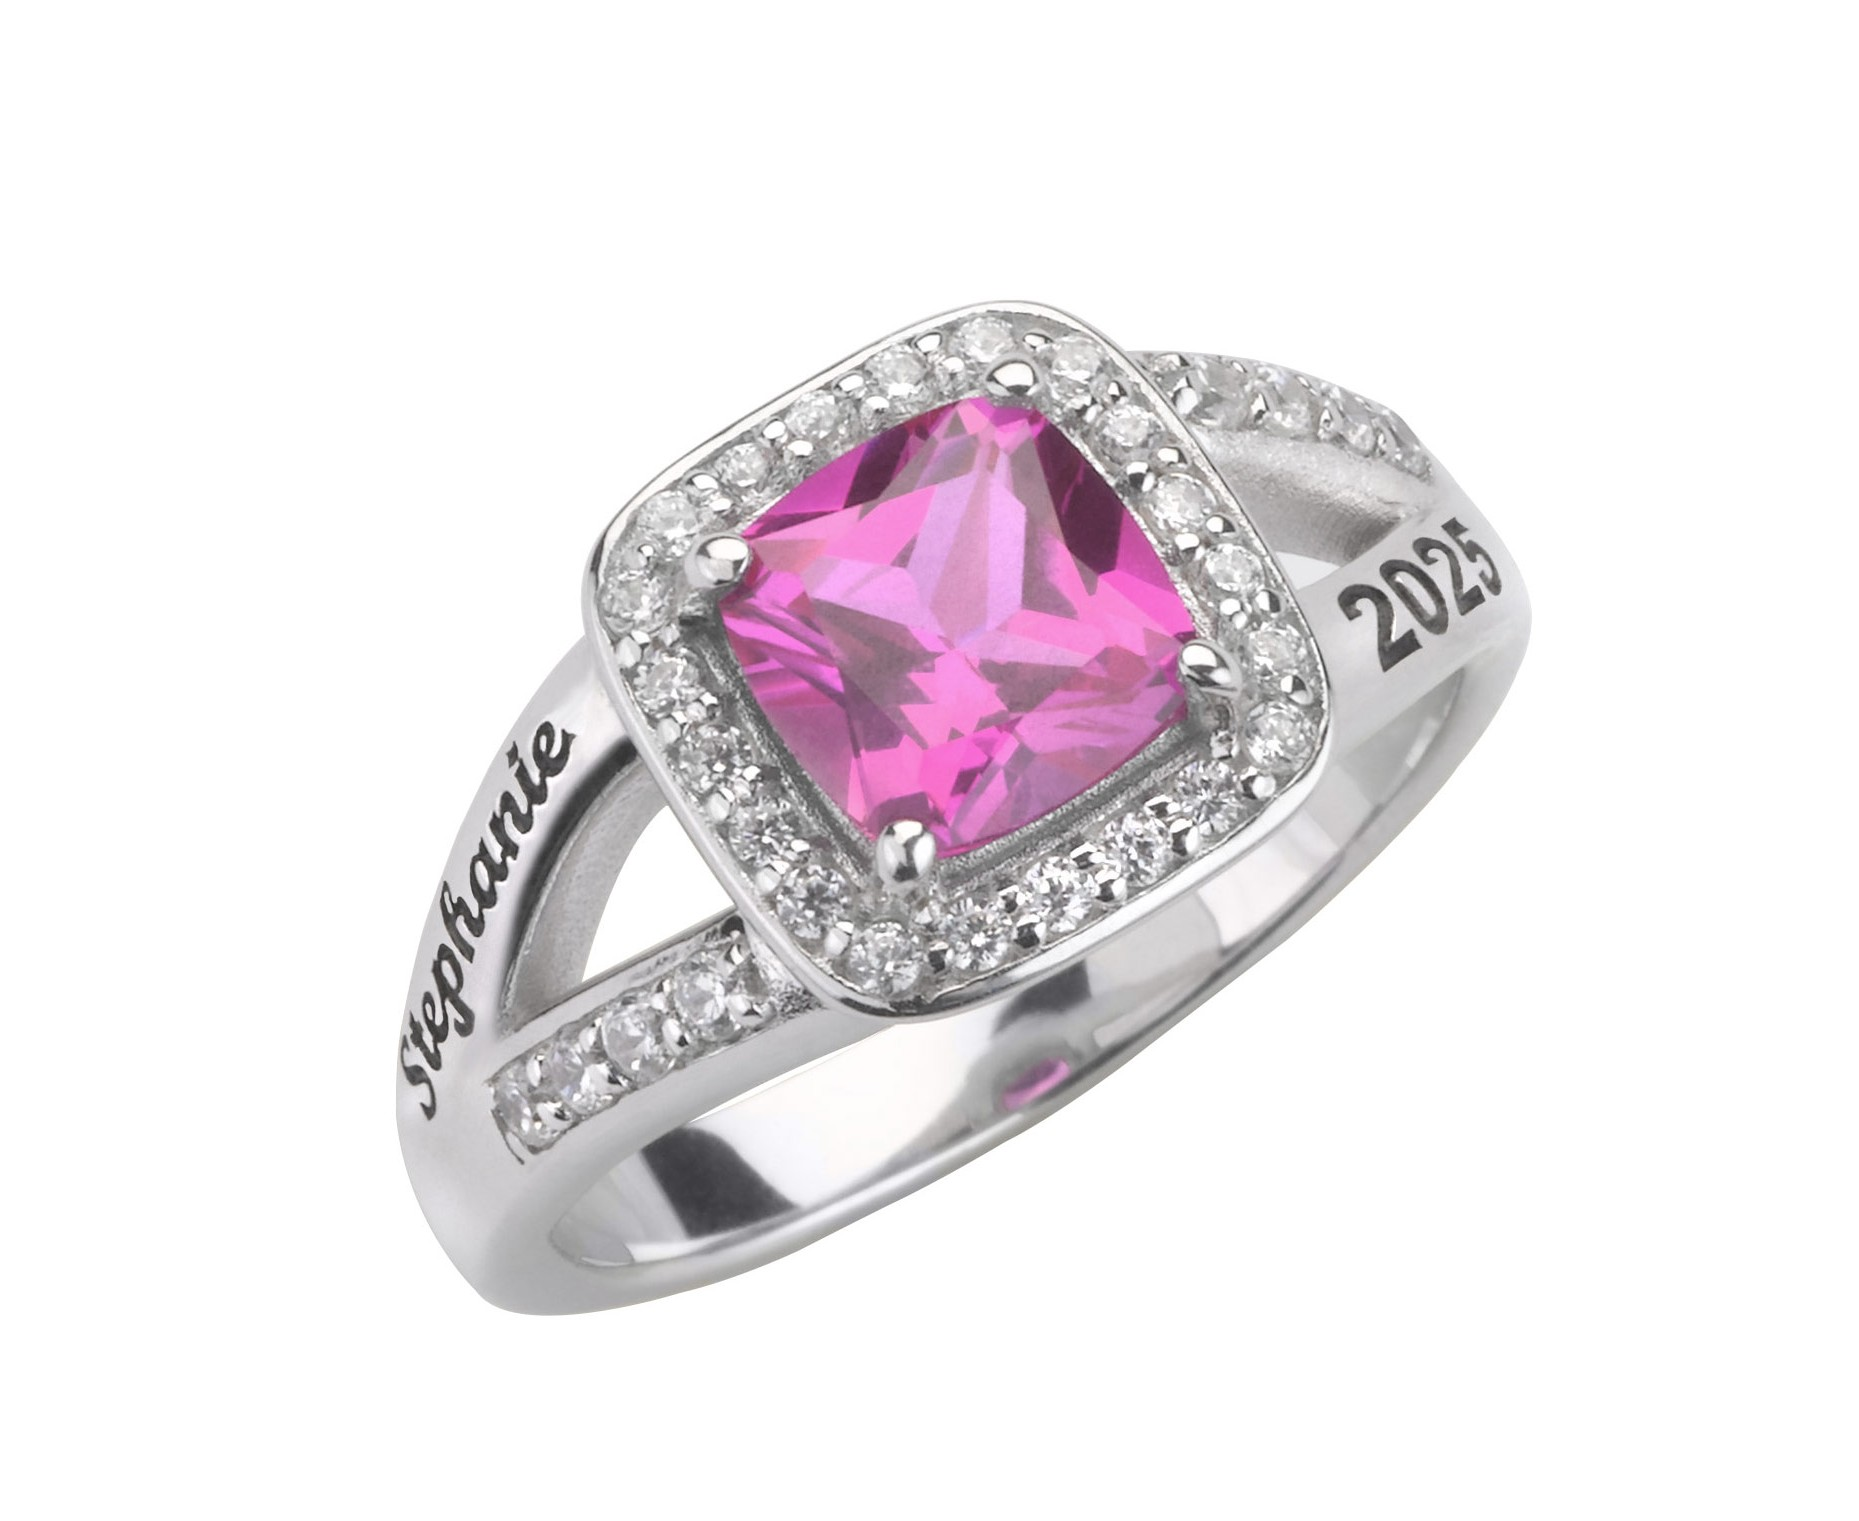 78+ images about Class rings on Pinterest | Walmart, High ... |Womens High School Class Rings